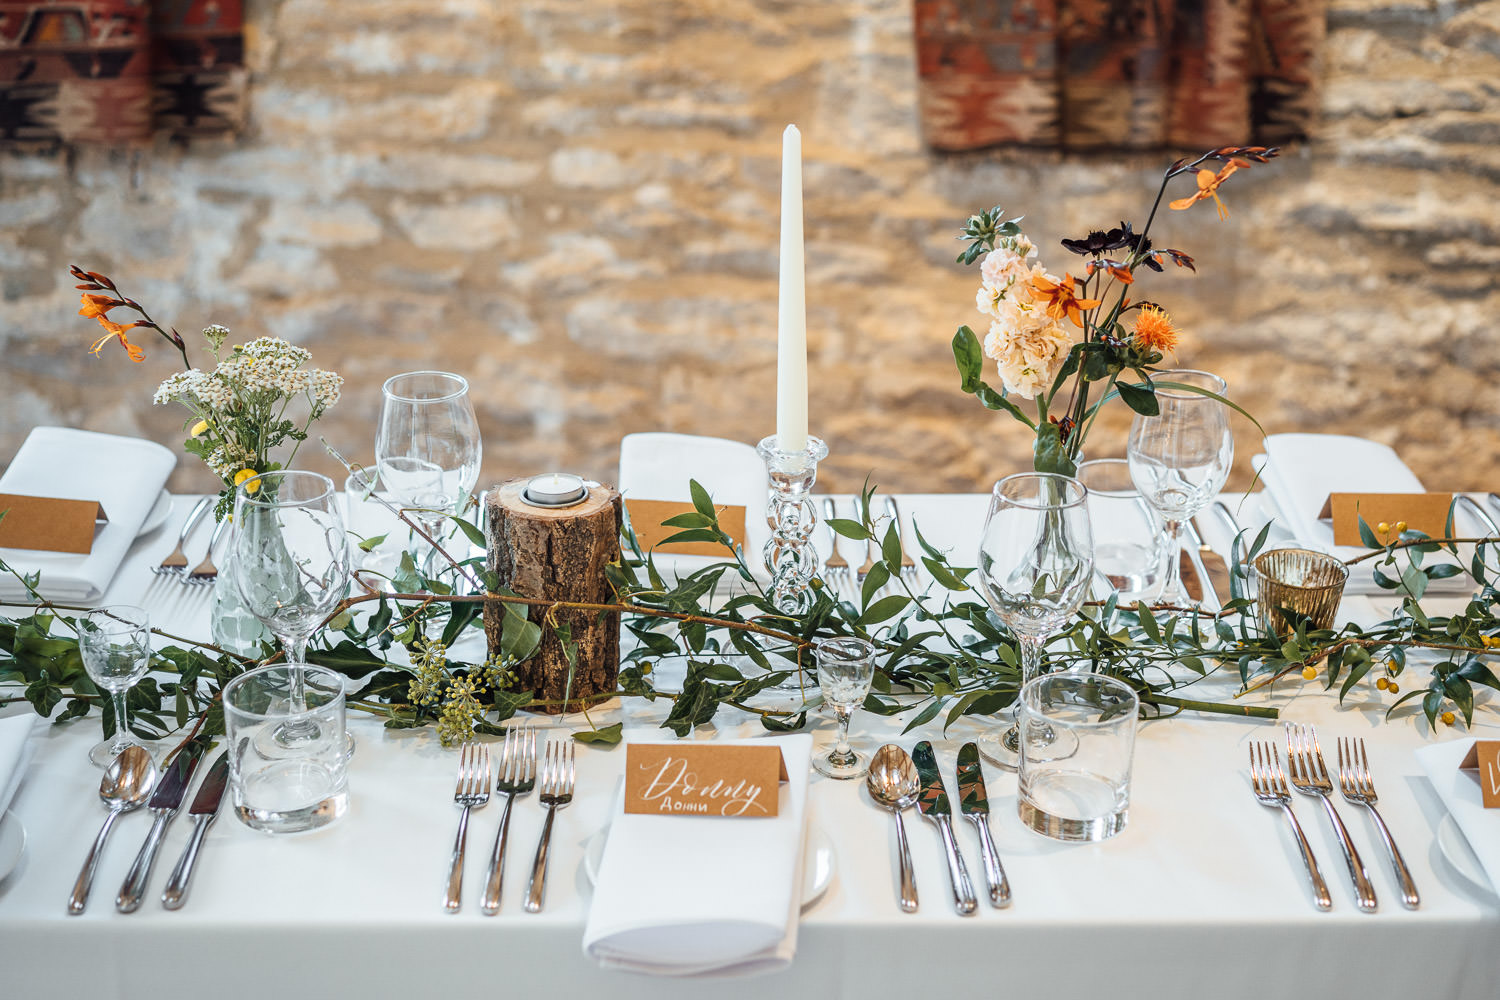 rustic floral table decorations in oxleaze barn wedding